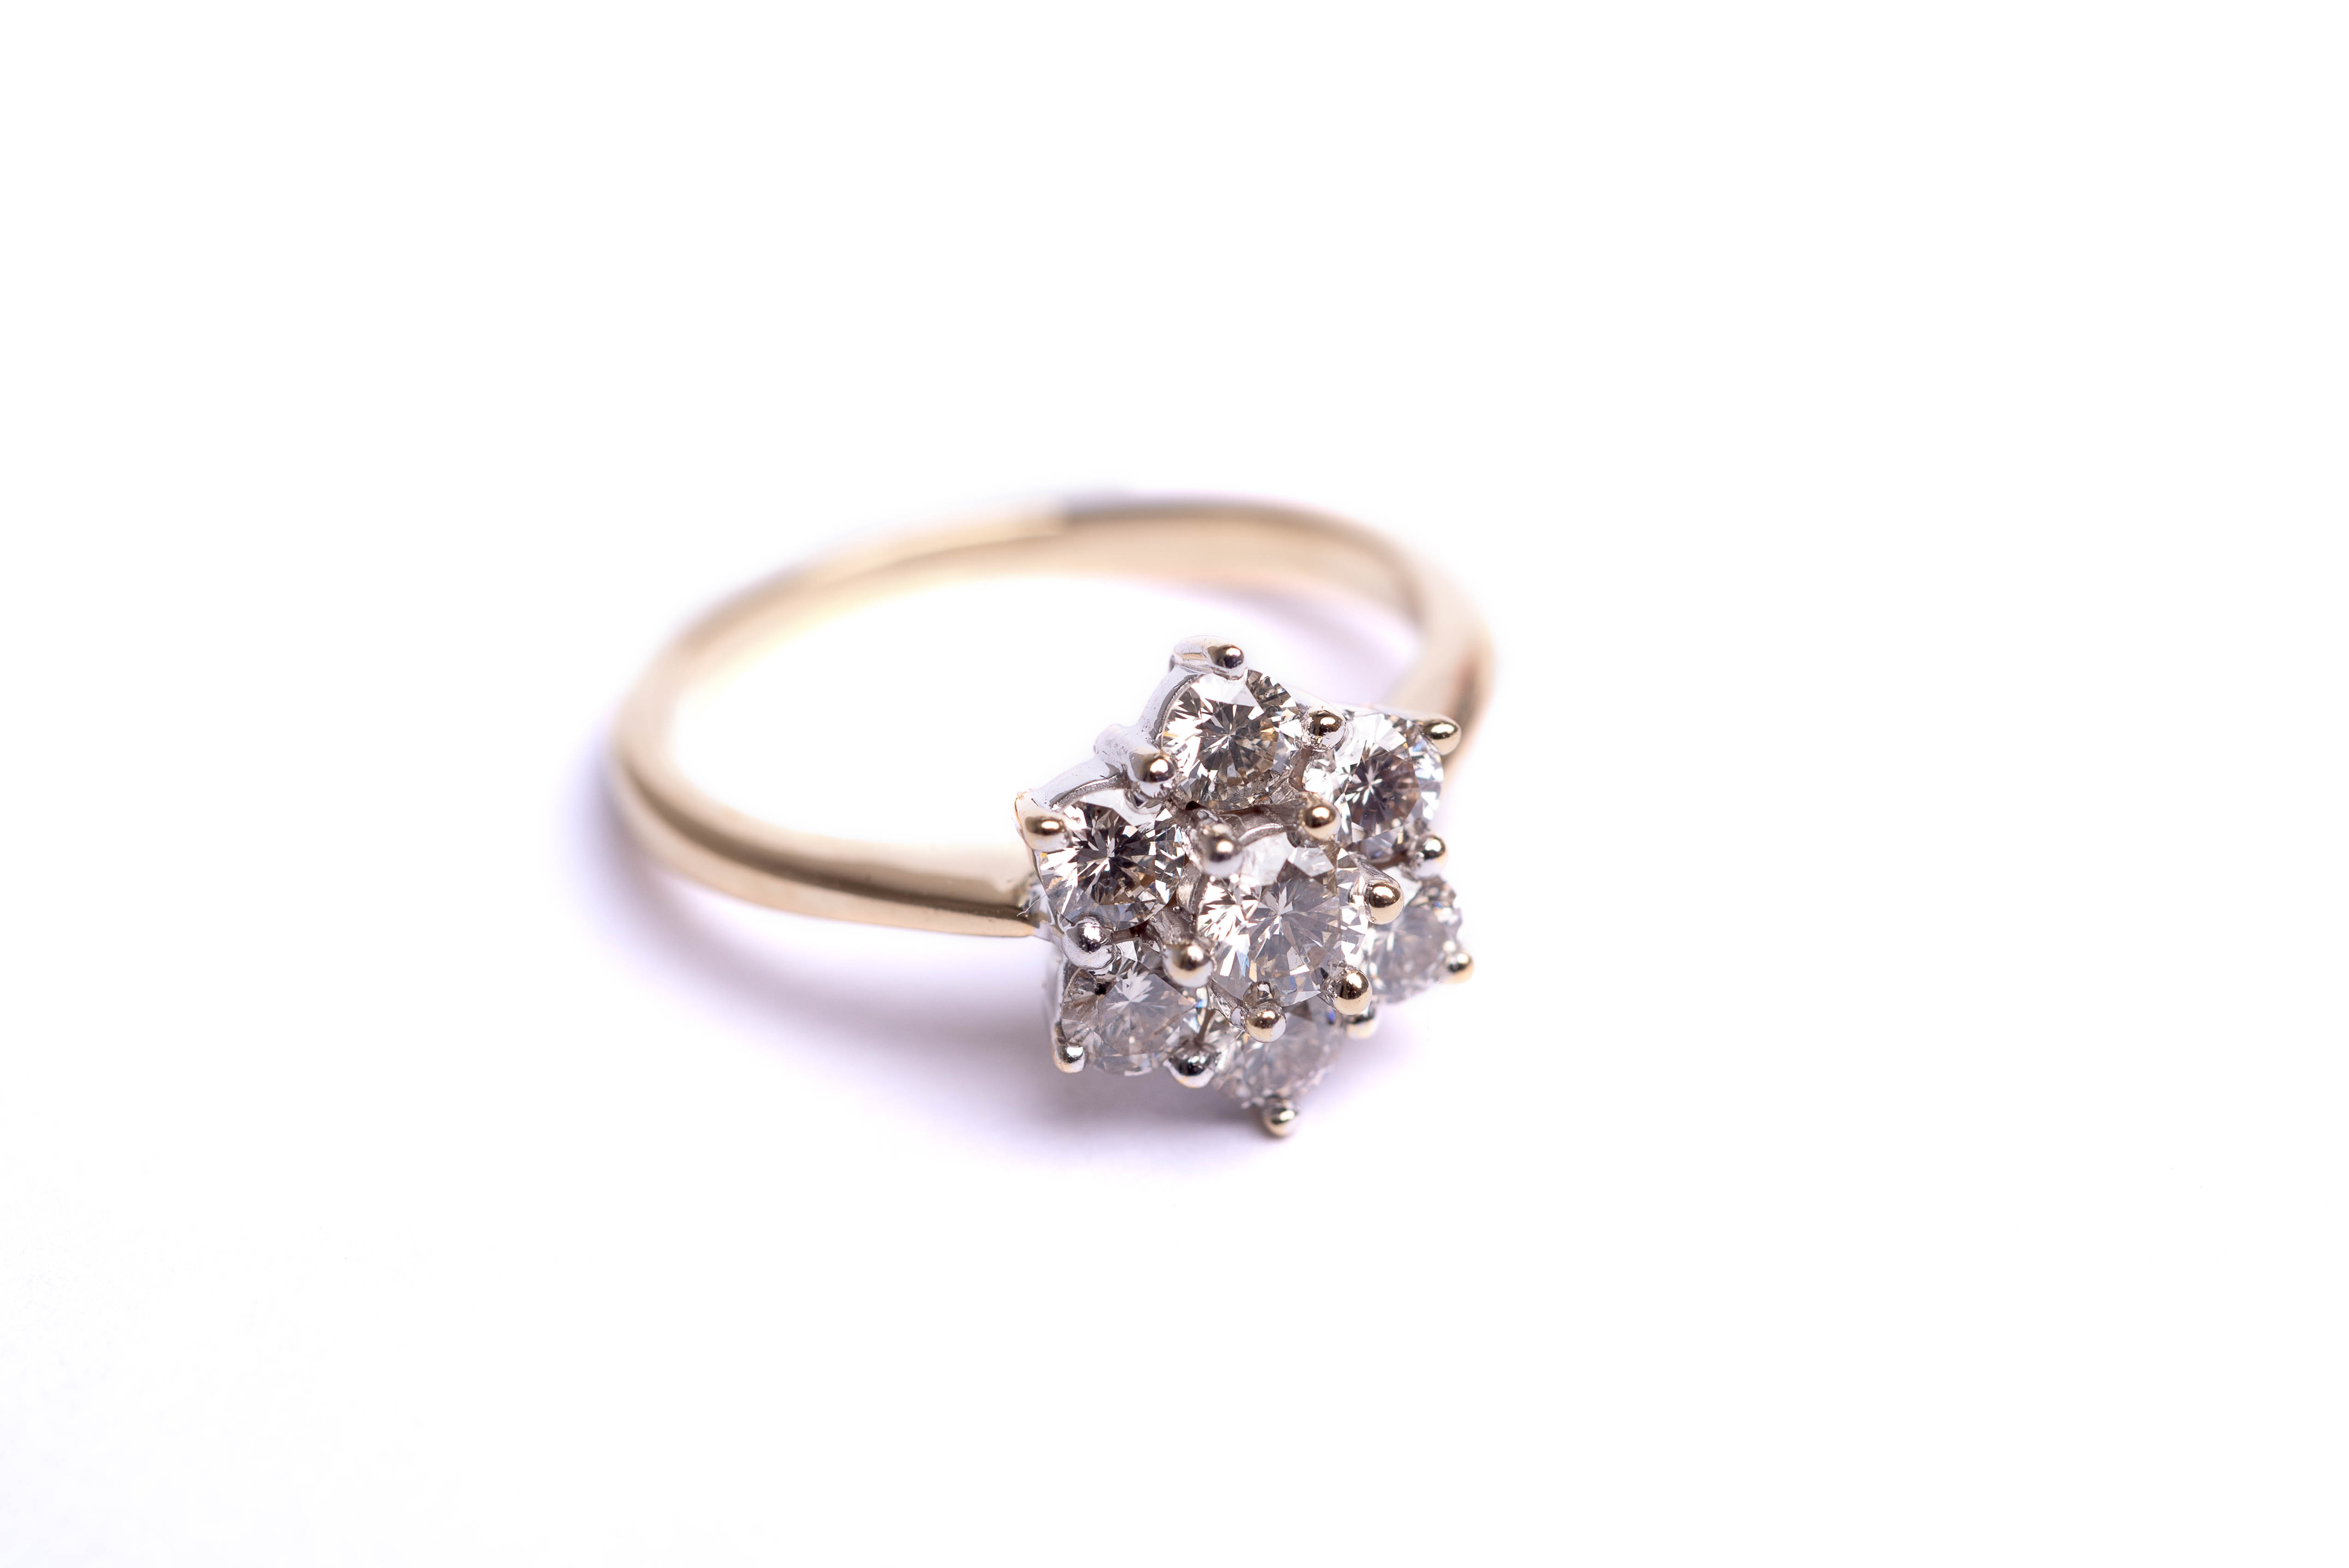 18ct Yellow Gold 1 5ct Brilliant Cut Diamond Cluster Ring Guy Wakeling Jewellery